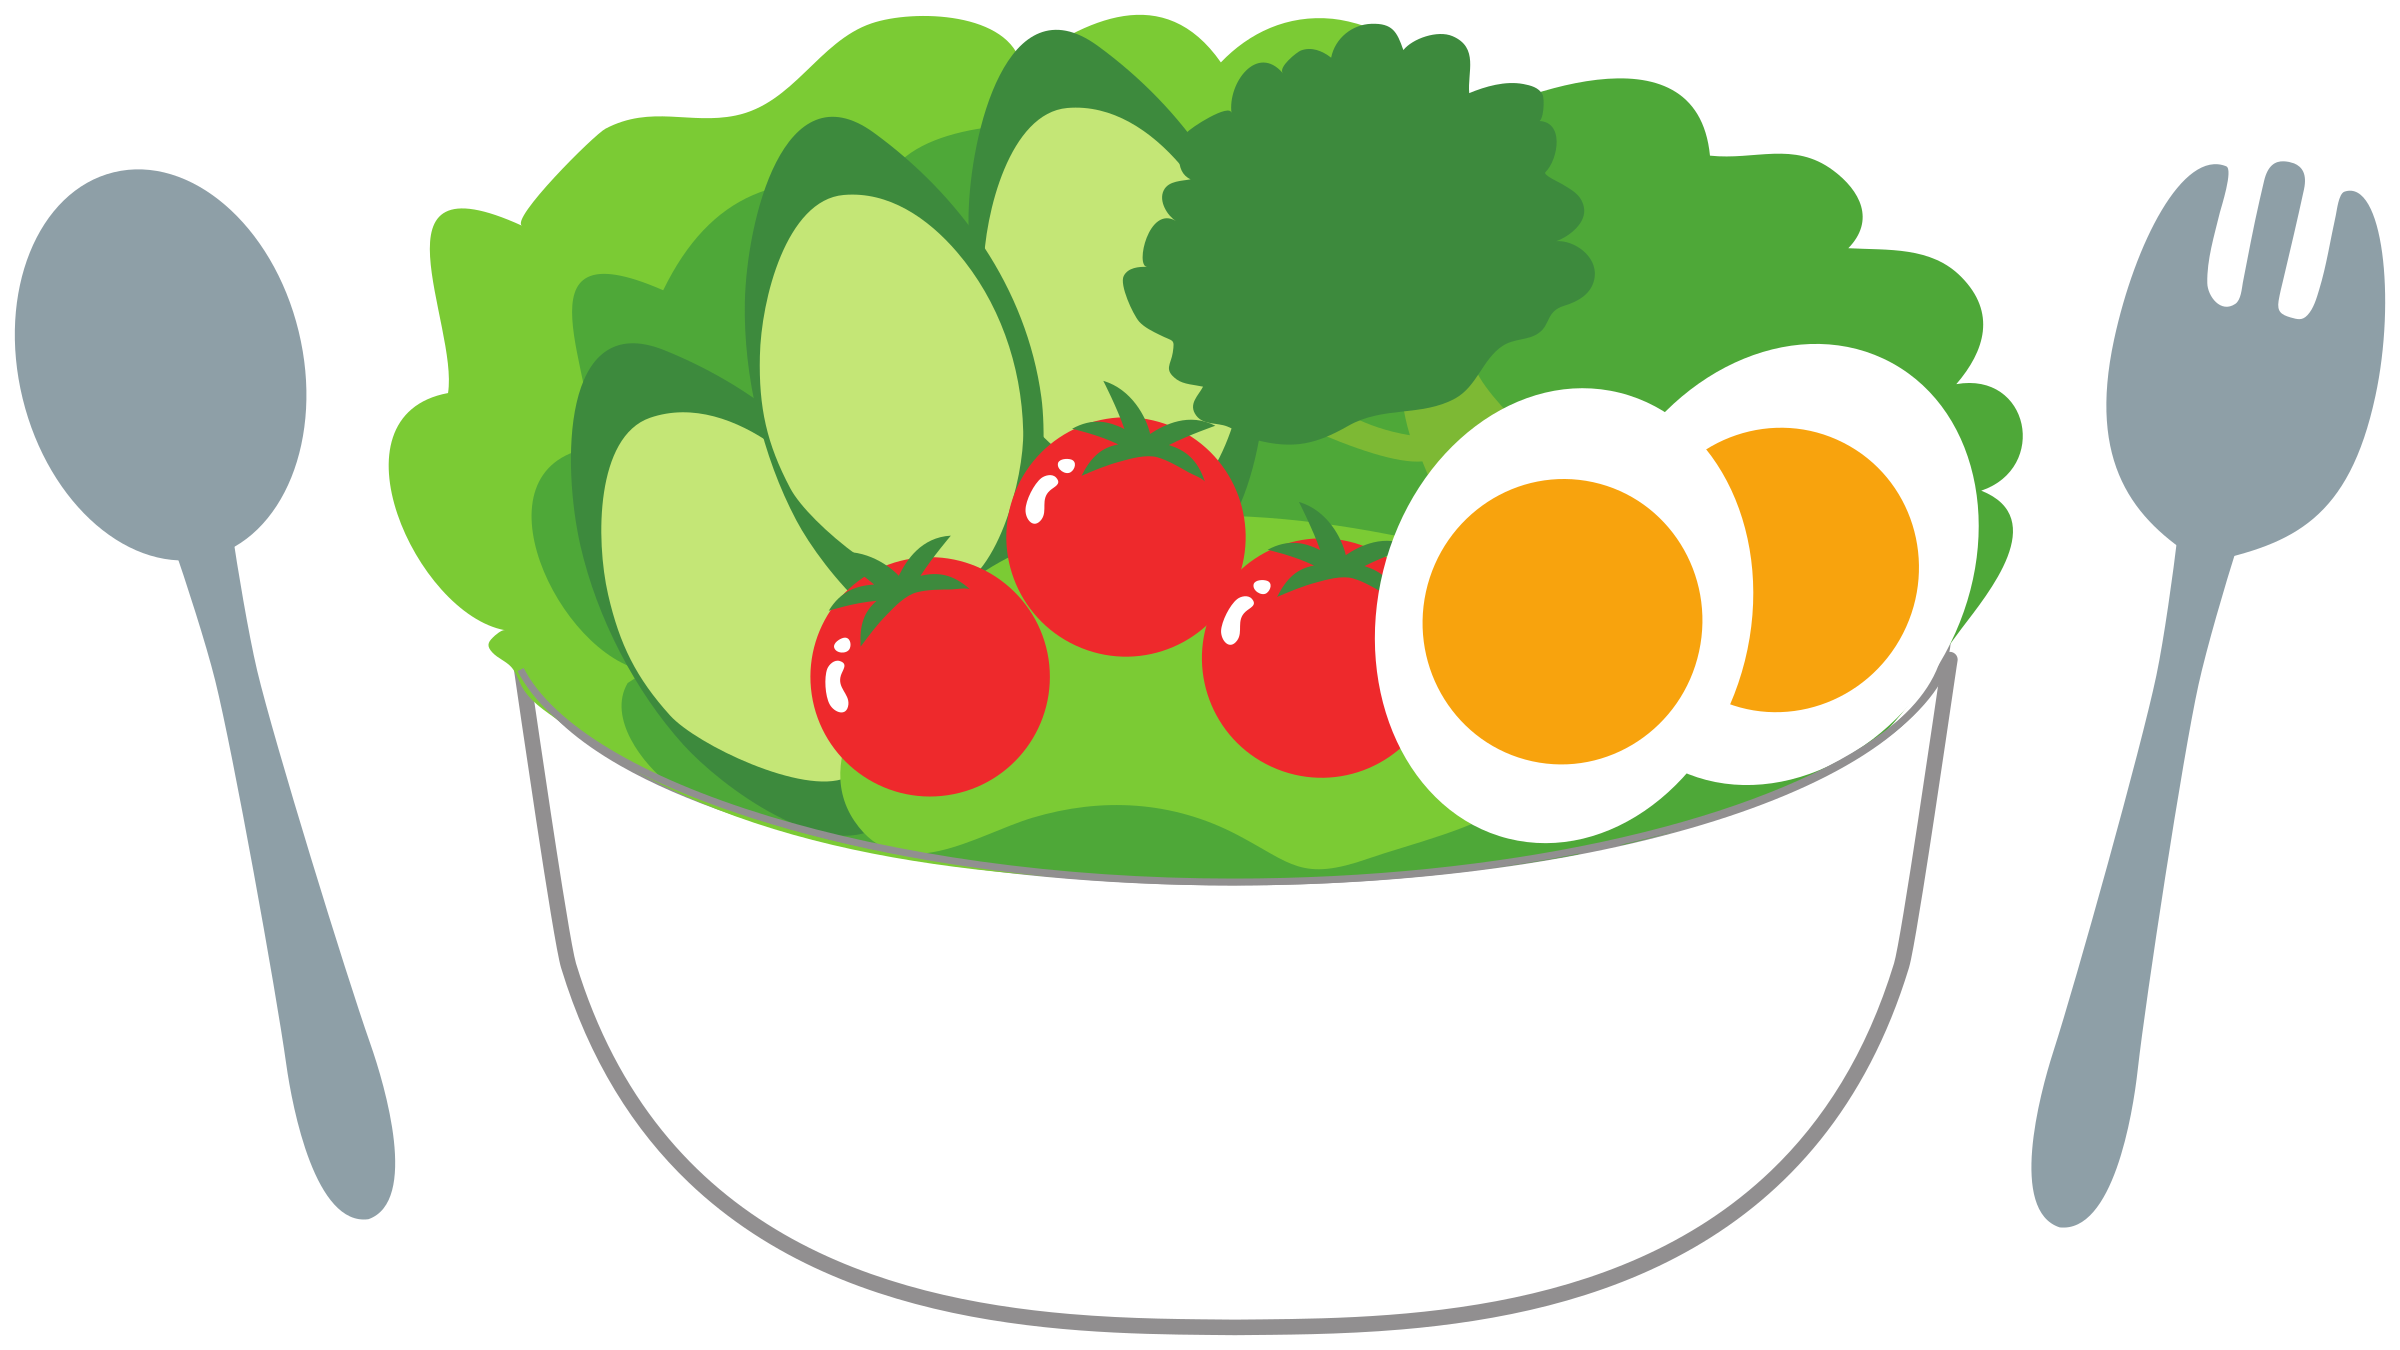 Tomatoes clipart fresh. Salad with cucumber and